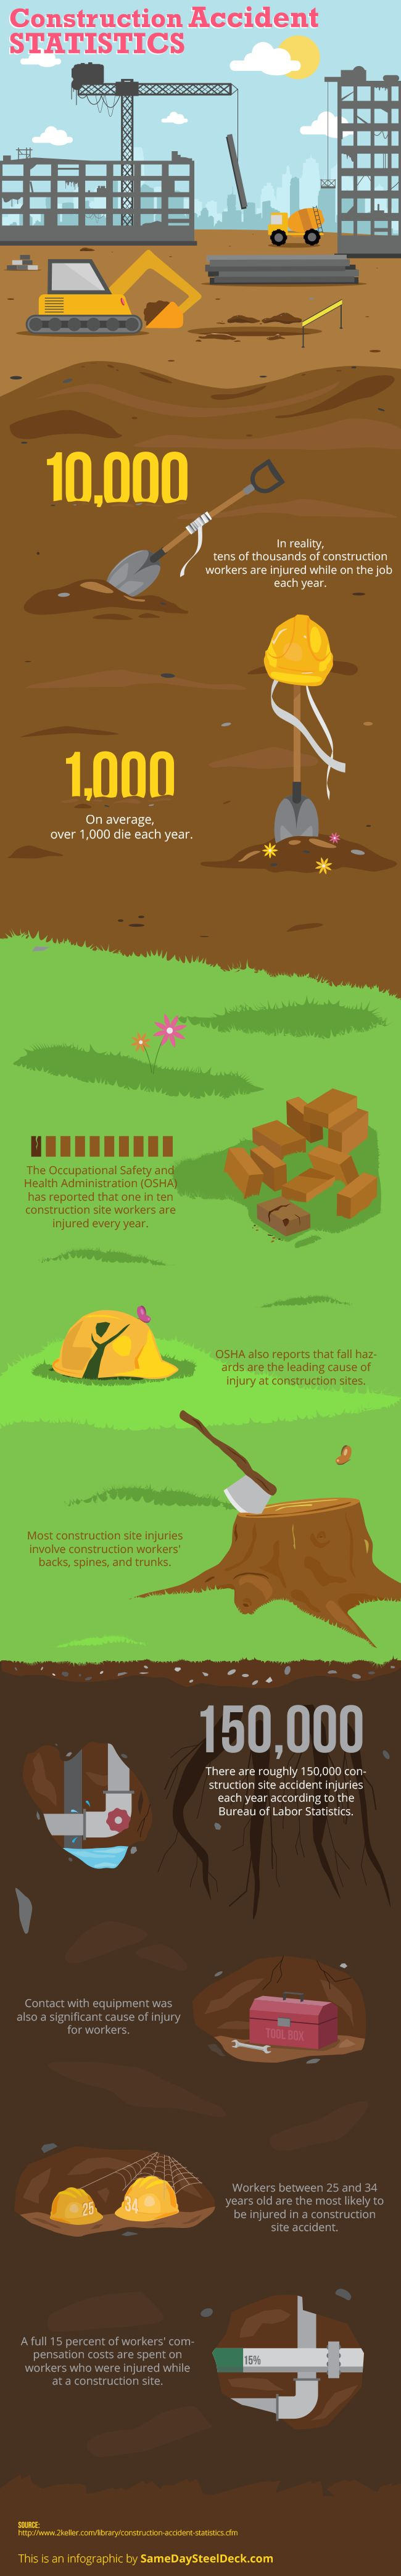 Infographic: OSHA has reported that 1 in 10 #construction workers are injured every year